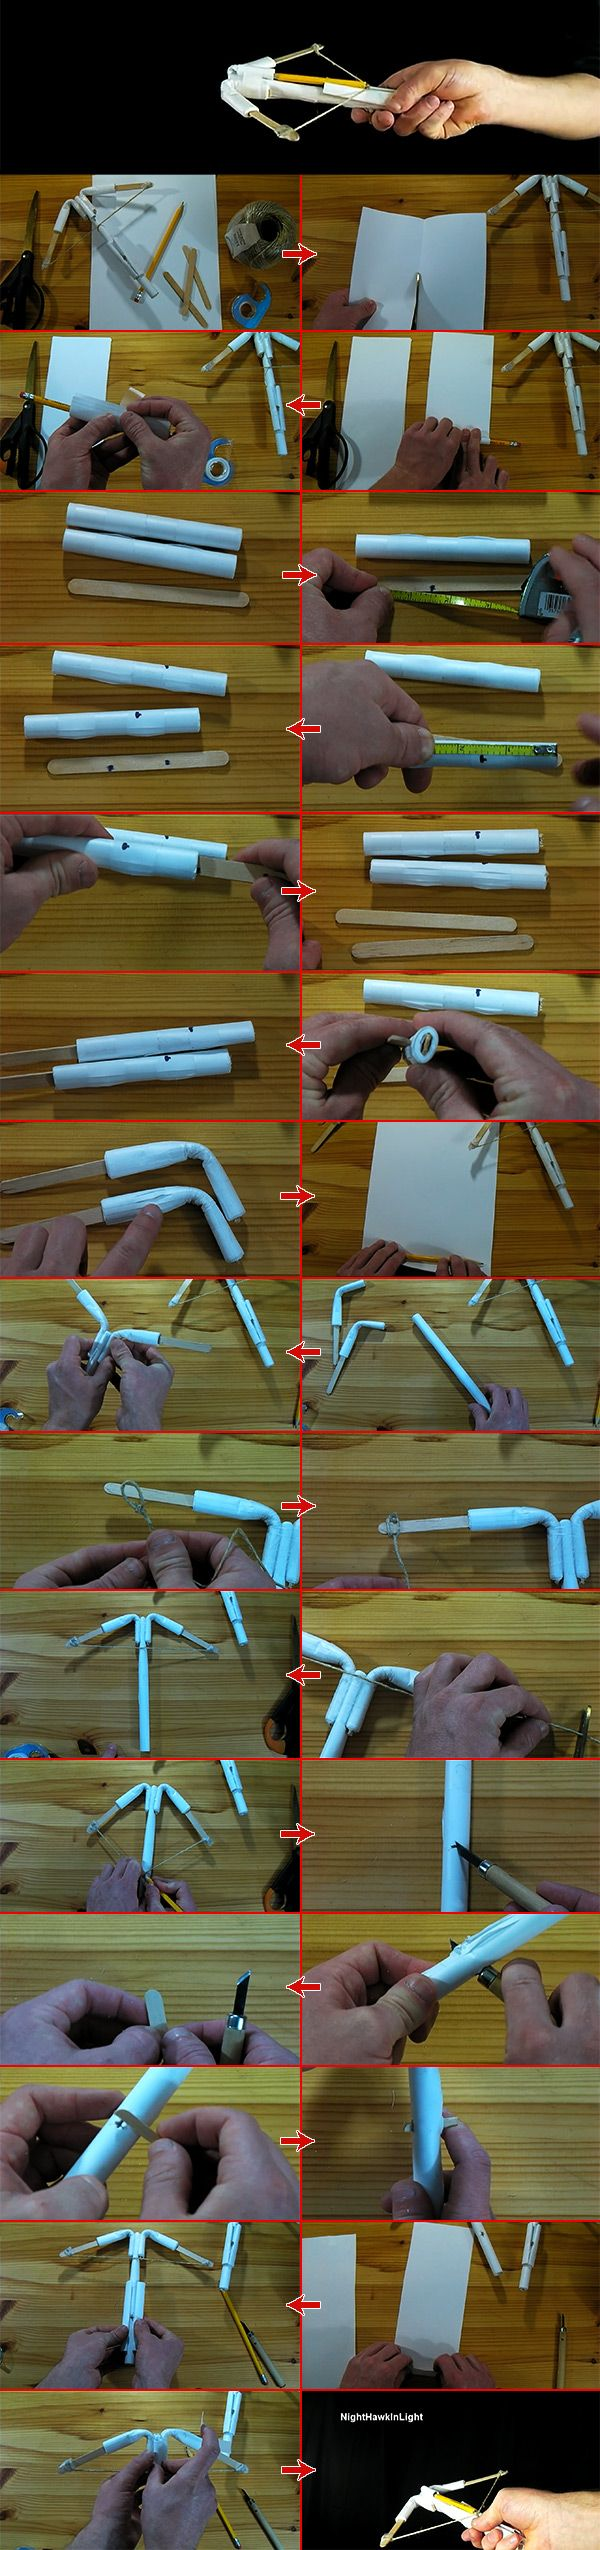 Homemade Toy Crossbow – Making a Pencil Paper Crossbow | BestCoolist---guess if your going squirell hunting. although who would do that? that would be mean, i can even break a branch. not after listening to Ingo Swann and their experiment on plants and how they feel pain.